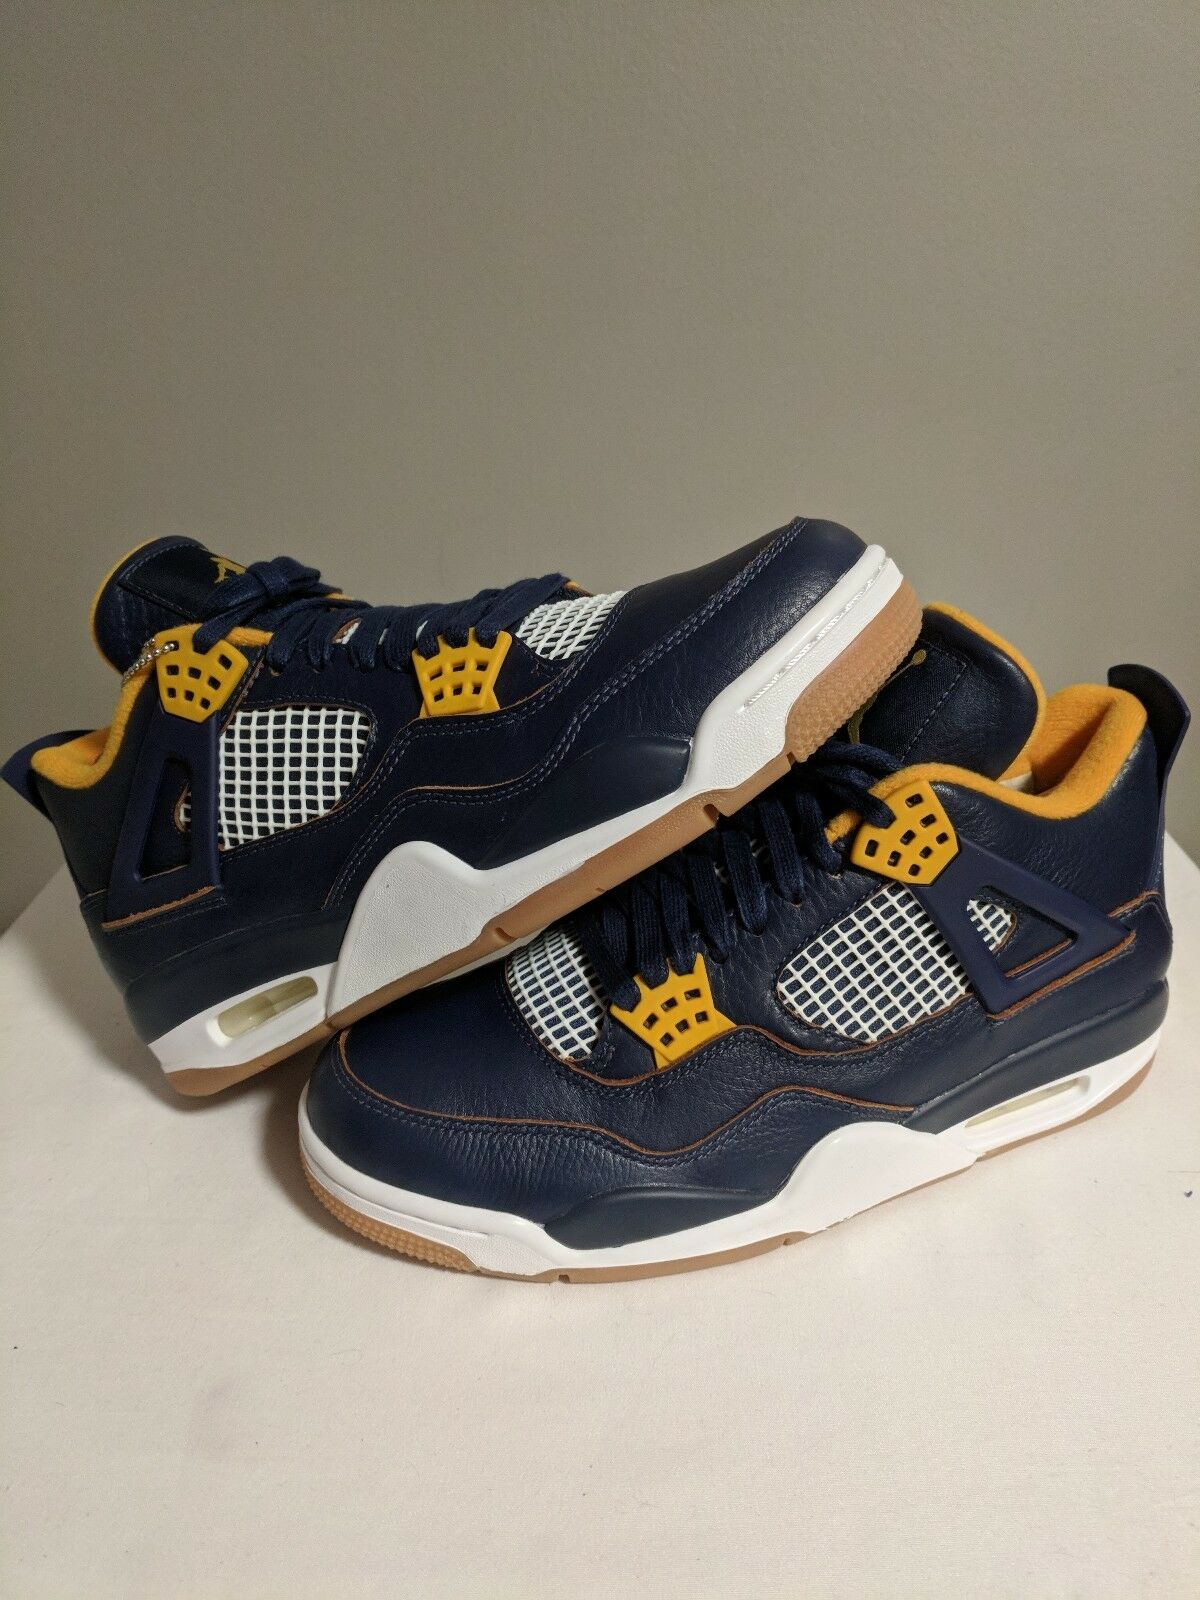 Air Jordan 4 IV Retro 'Dunk From From From Above' Navy gold White Size 8 DS brand new b52d0f